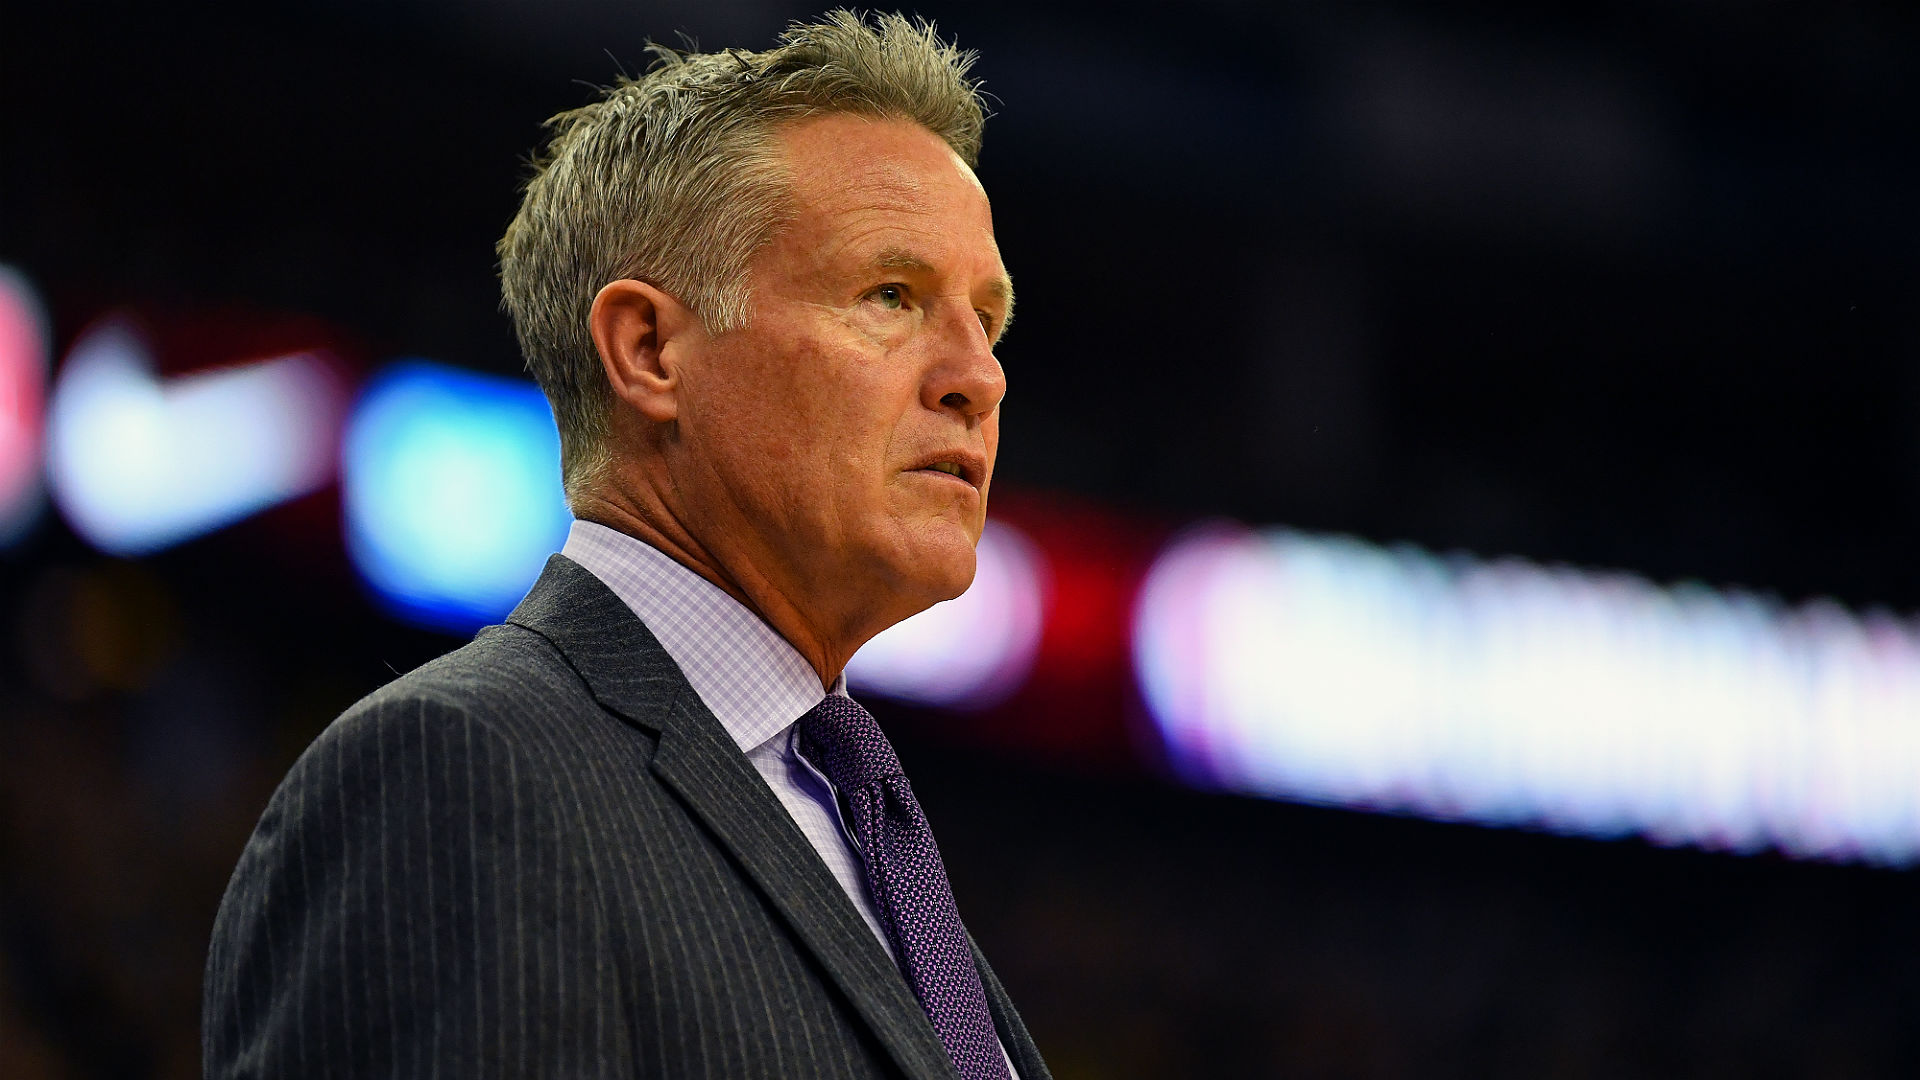 NBA trade rumors: 76ers looking to add wing player, center before deadline